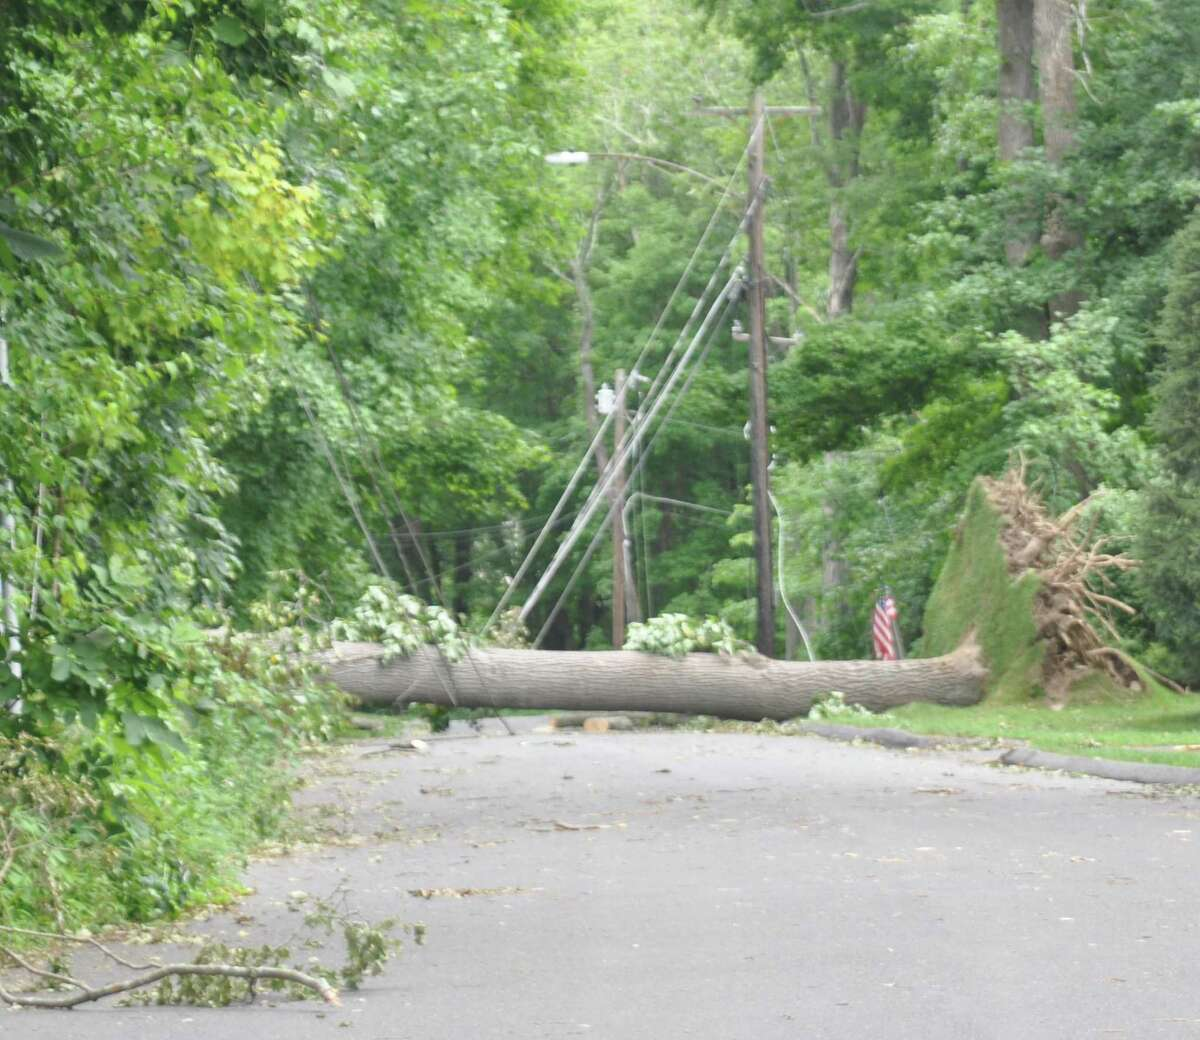 A tree and wires down blocked Rockewell Road in Ridgefield for days after Storm Isaias.